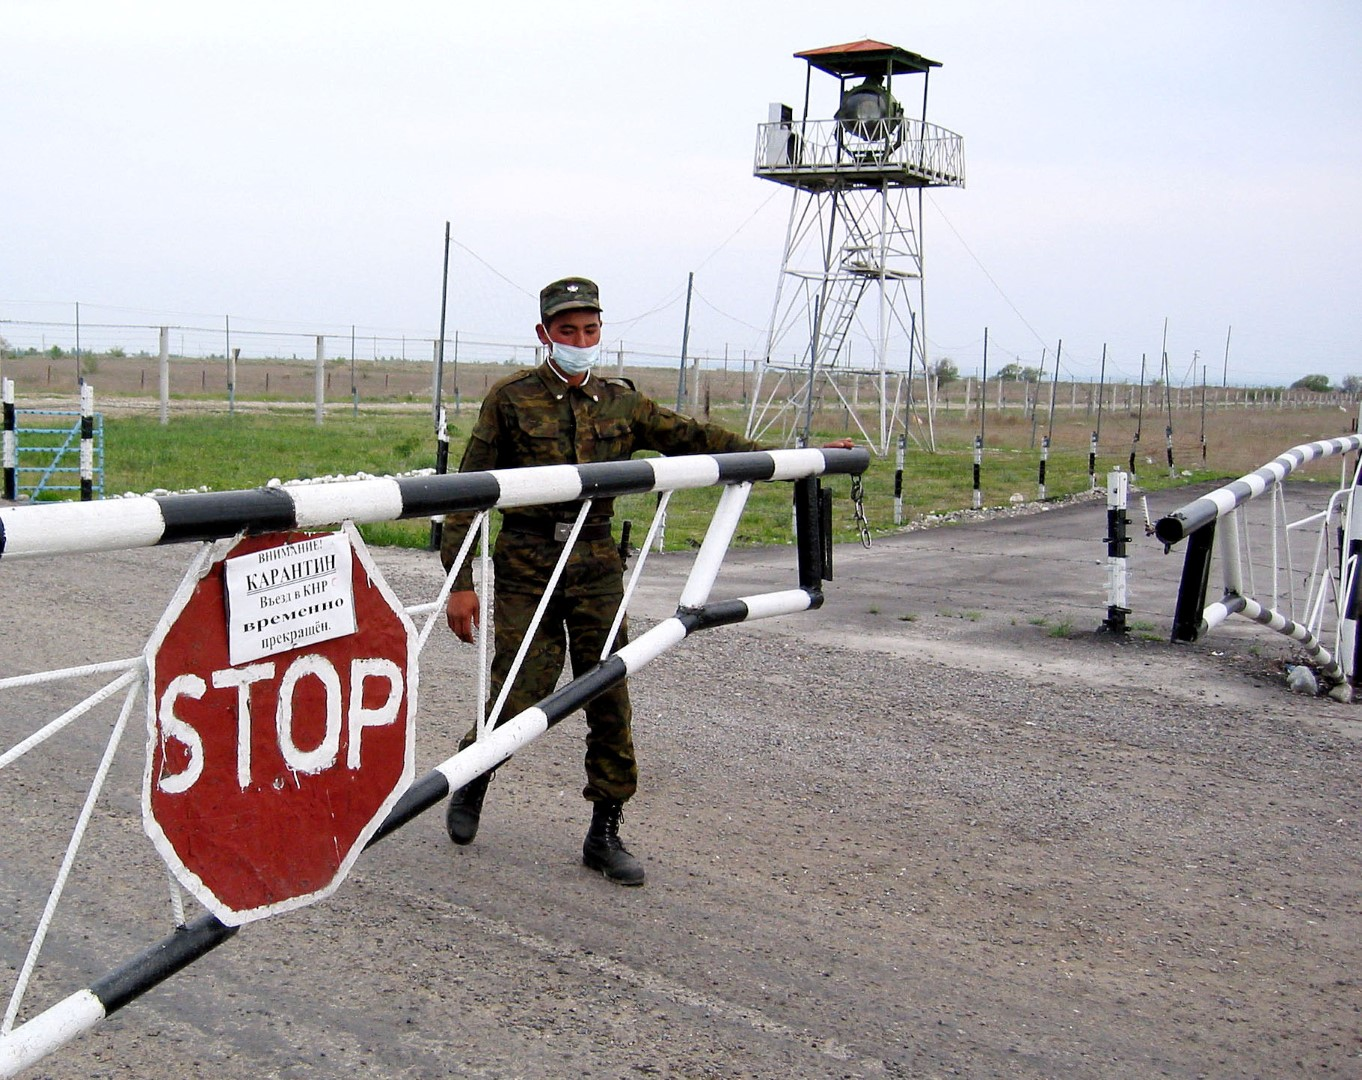 A border guard wearing a mask closes a barrier at the Korgas crossing point, the largest on the 1,500-km (940 mile) Kazakh-Chinese border on Tuesday, May 13, 2003. The barrier carries a sign announcing that entry to China has been temporarily suspended. Kazakhstan has closed its border with China to prevent the spread of Severe Acute Respiratory Syndrome, but no cases have so far been recorded in the former Soviet Central Asian state. TO ACCOMPANY FEATURE SARS-KAZAKHSTAN-CHINA REUTERS/Alexei Kalmykov AKA - RP3DRIIYJKAA